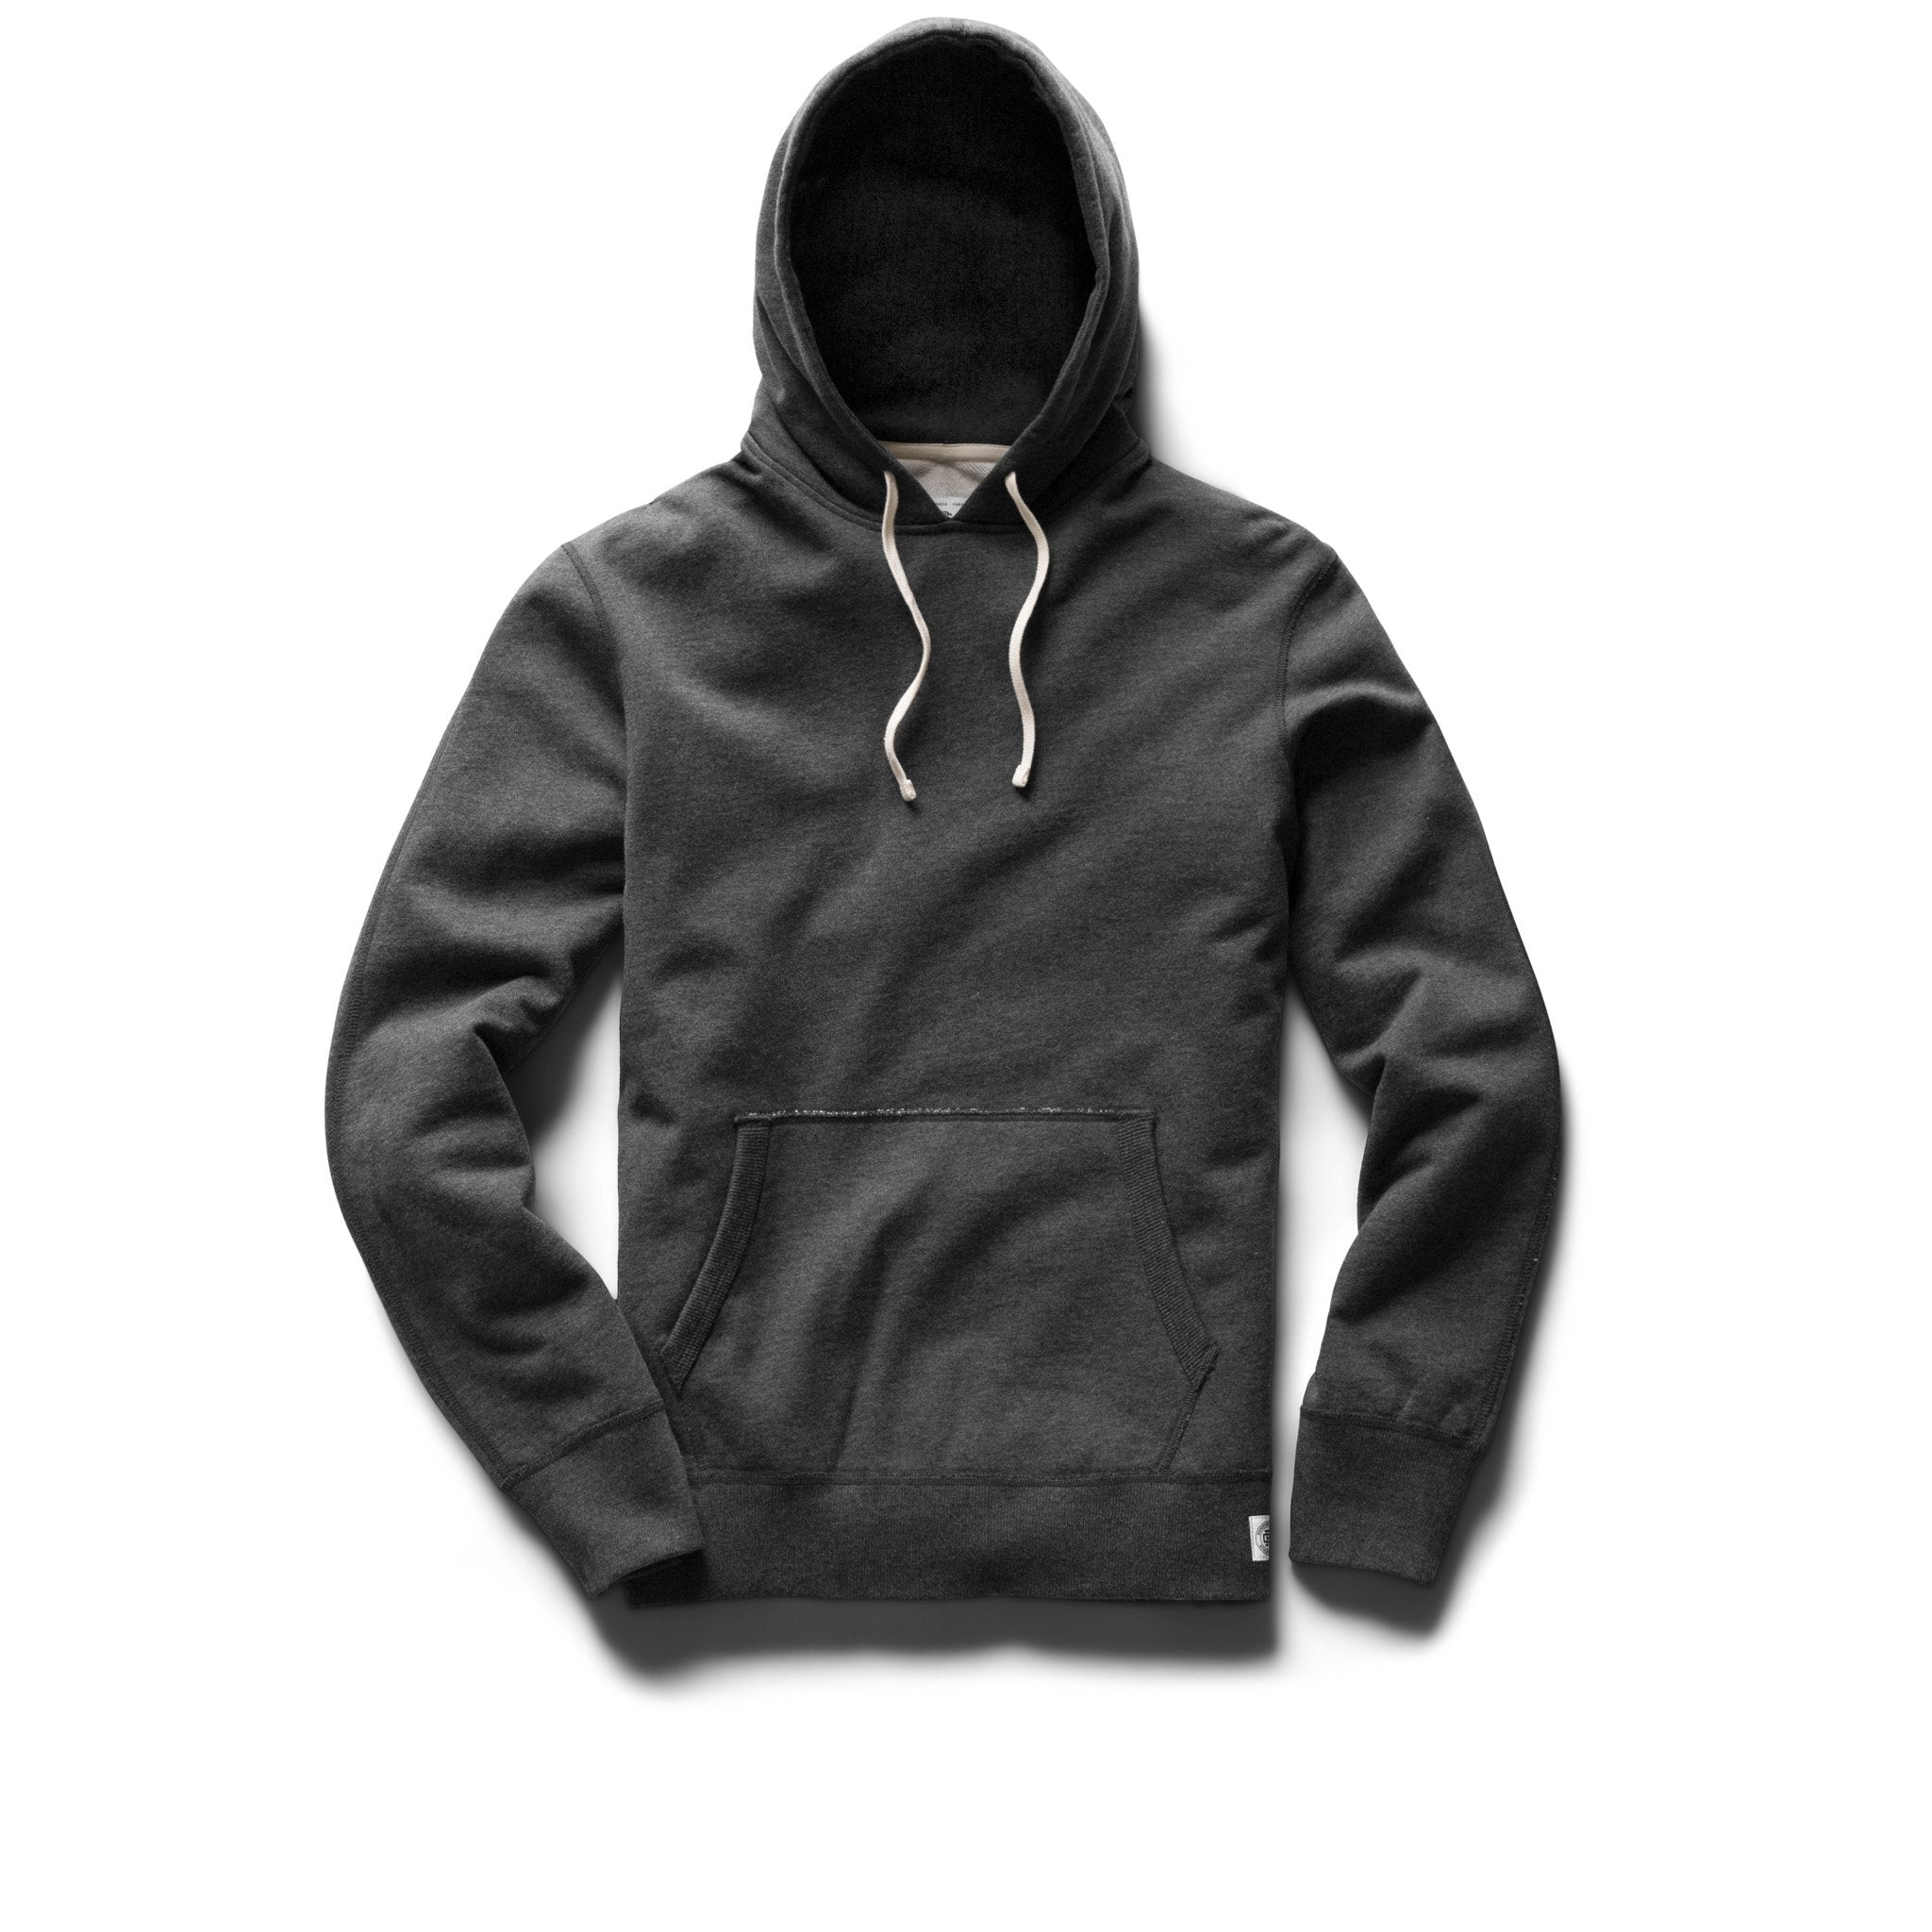 REIGNING CHAMP M'S HOODIES HEATHER CHARCOAL M PULLOVER HOODIE - MIDWEIGHT TERRY